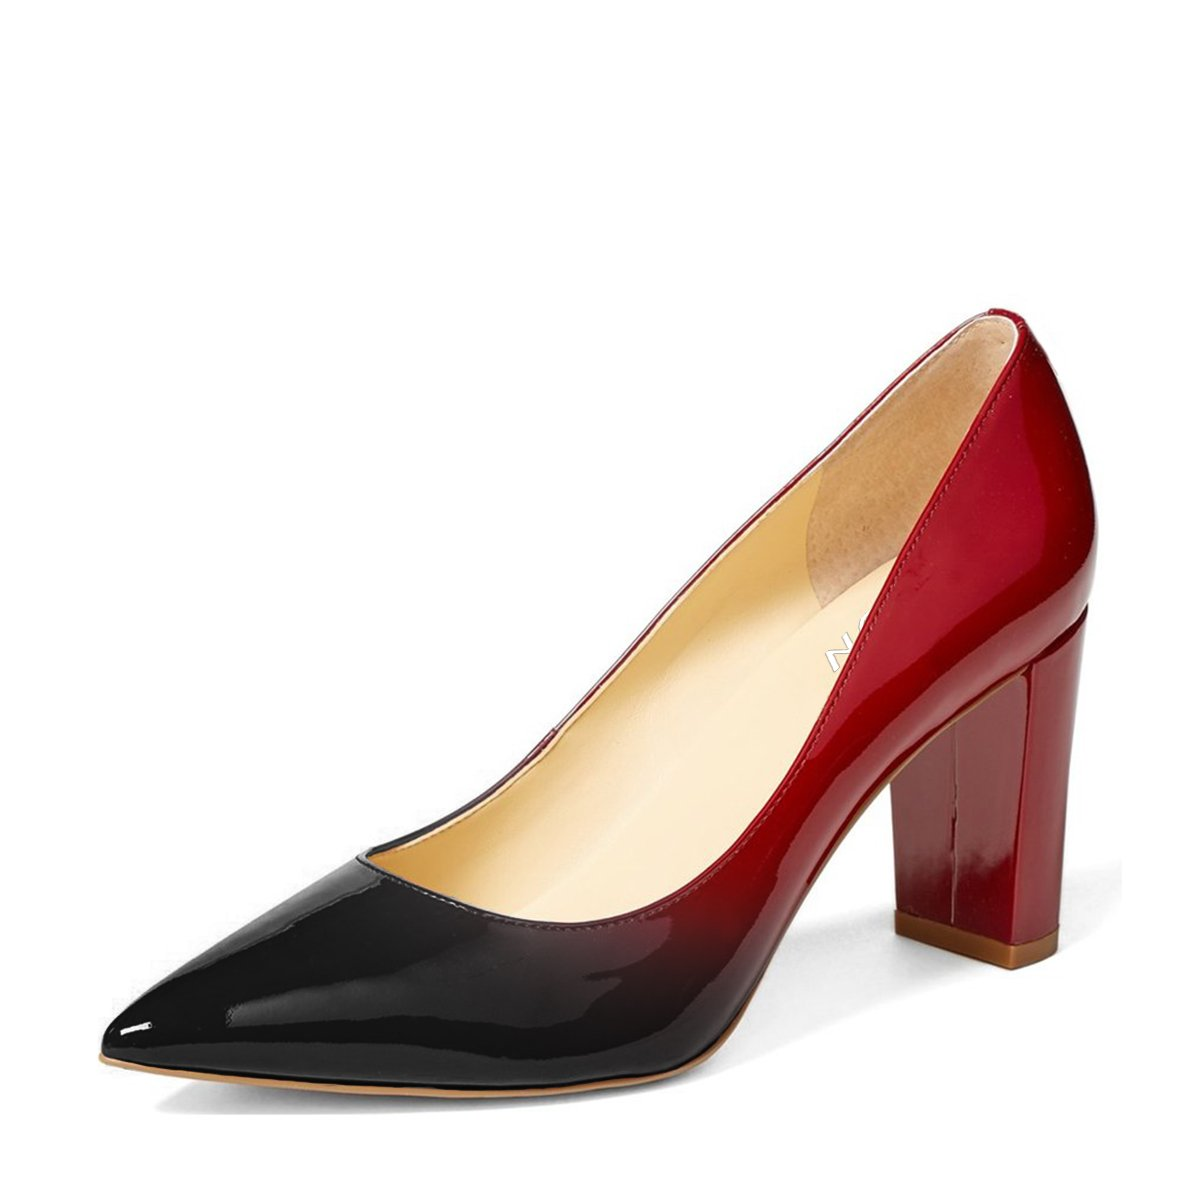 YDN Women's Classic Pointy Toe OL Pumps Slip-On Patent Leather Block Heel Dress Shoes B073W9CH6W 10 B(M) US|Black-red